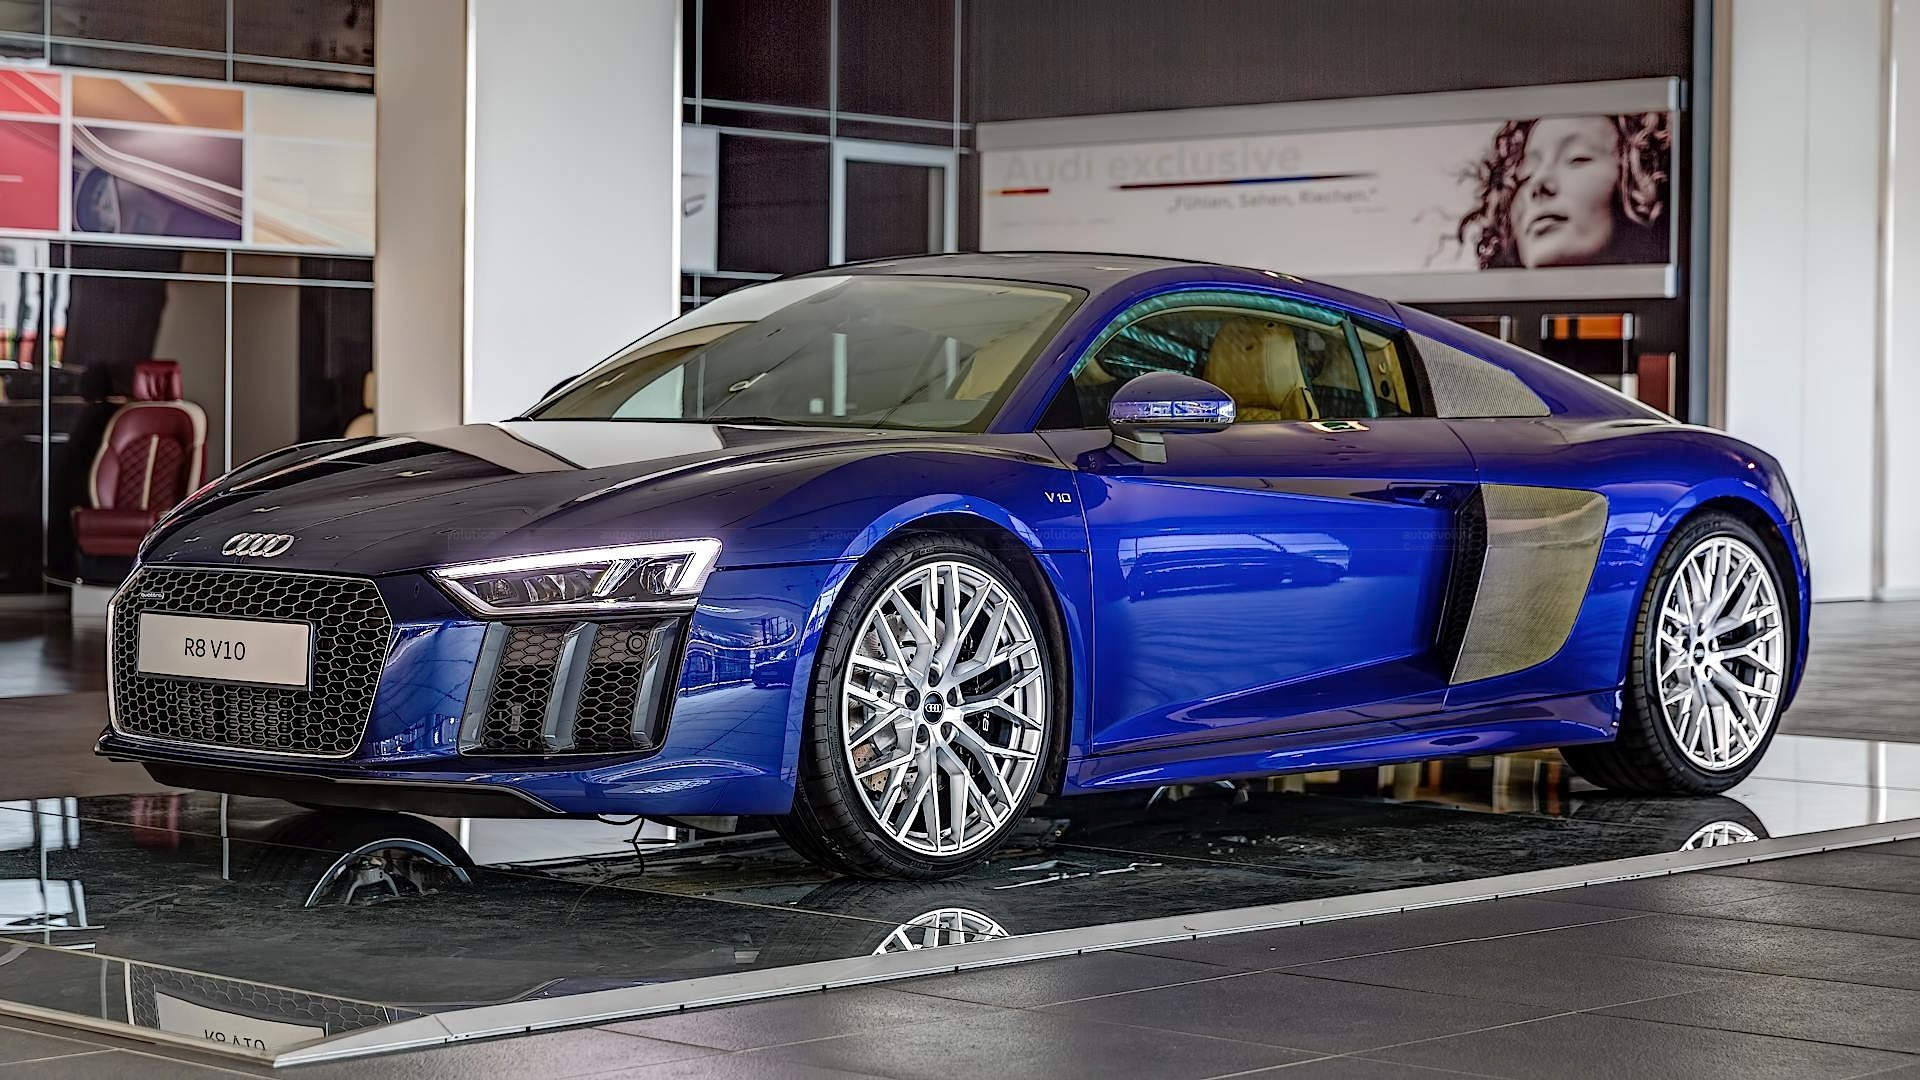 2016 audi r8 v10 gets santorini blue paint and havana. Black Bedroom Furniture Sets. Home Design Ideas